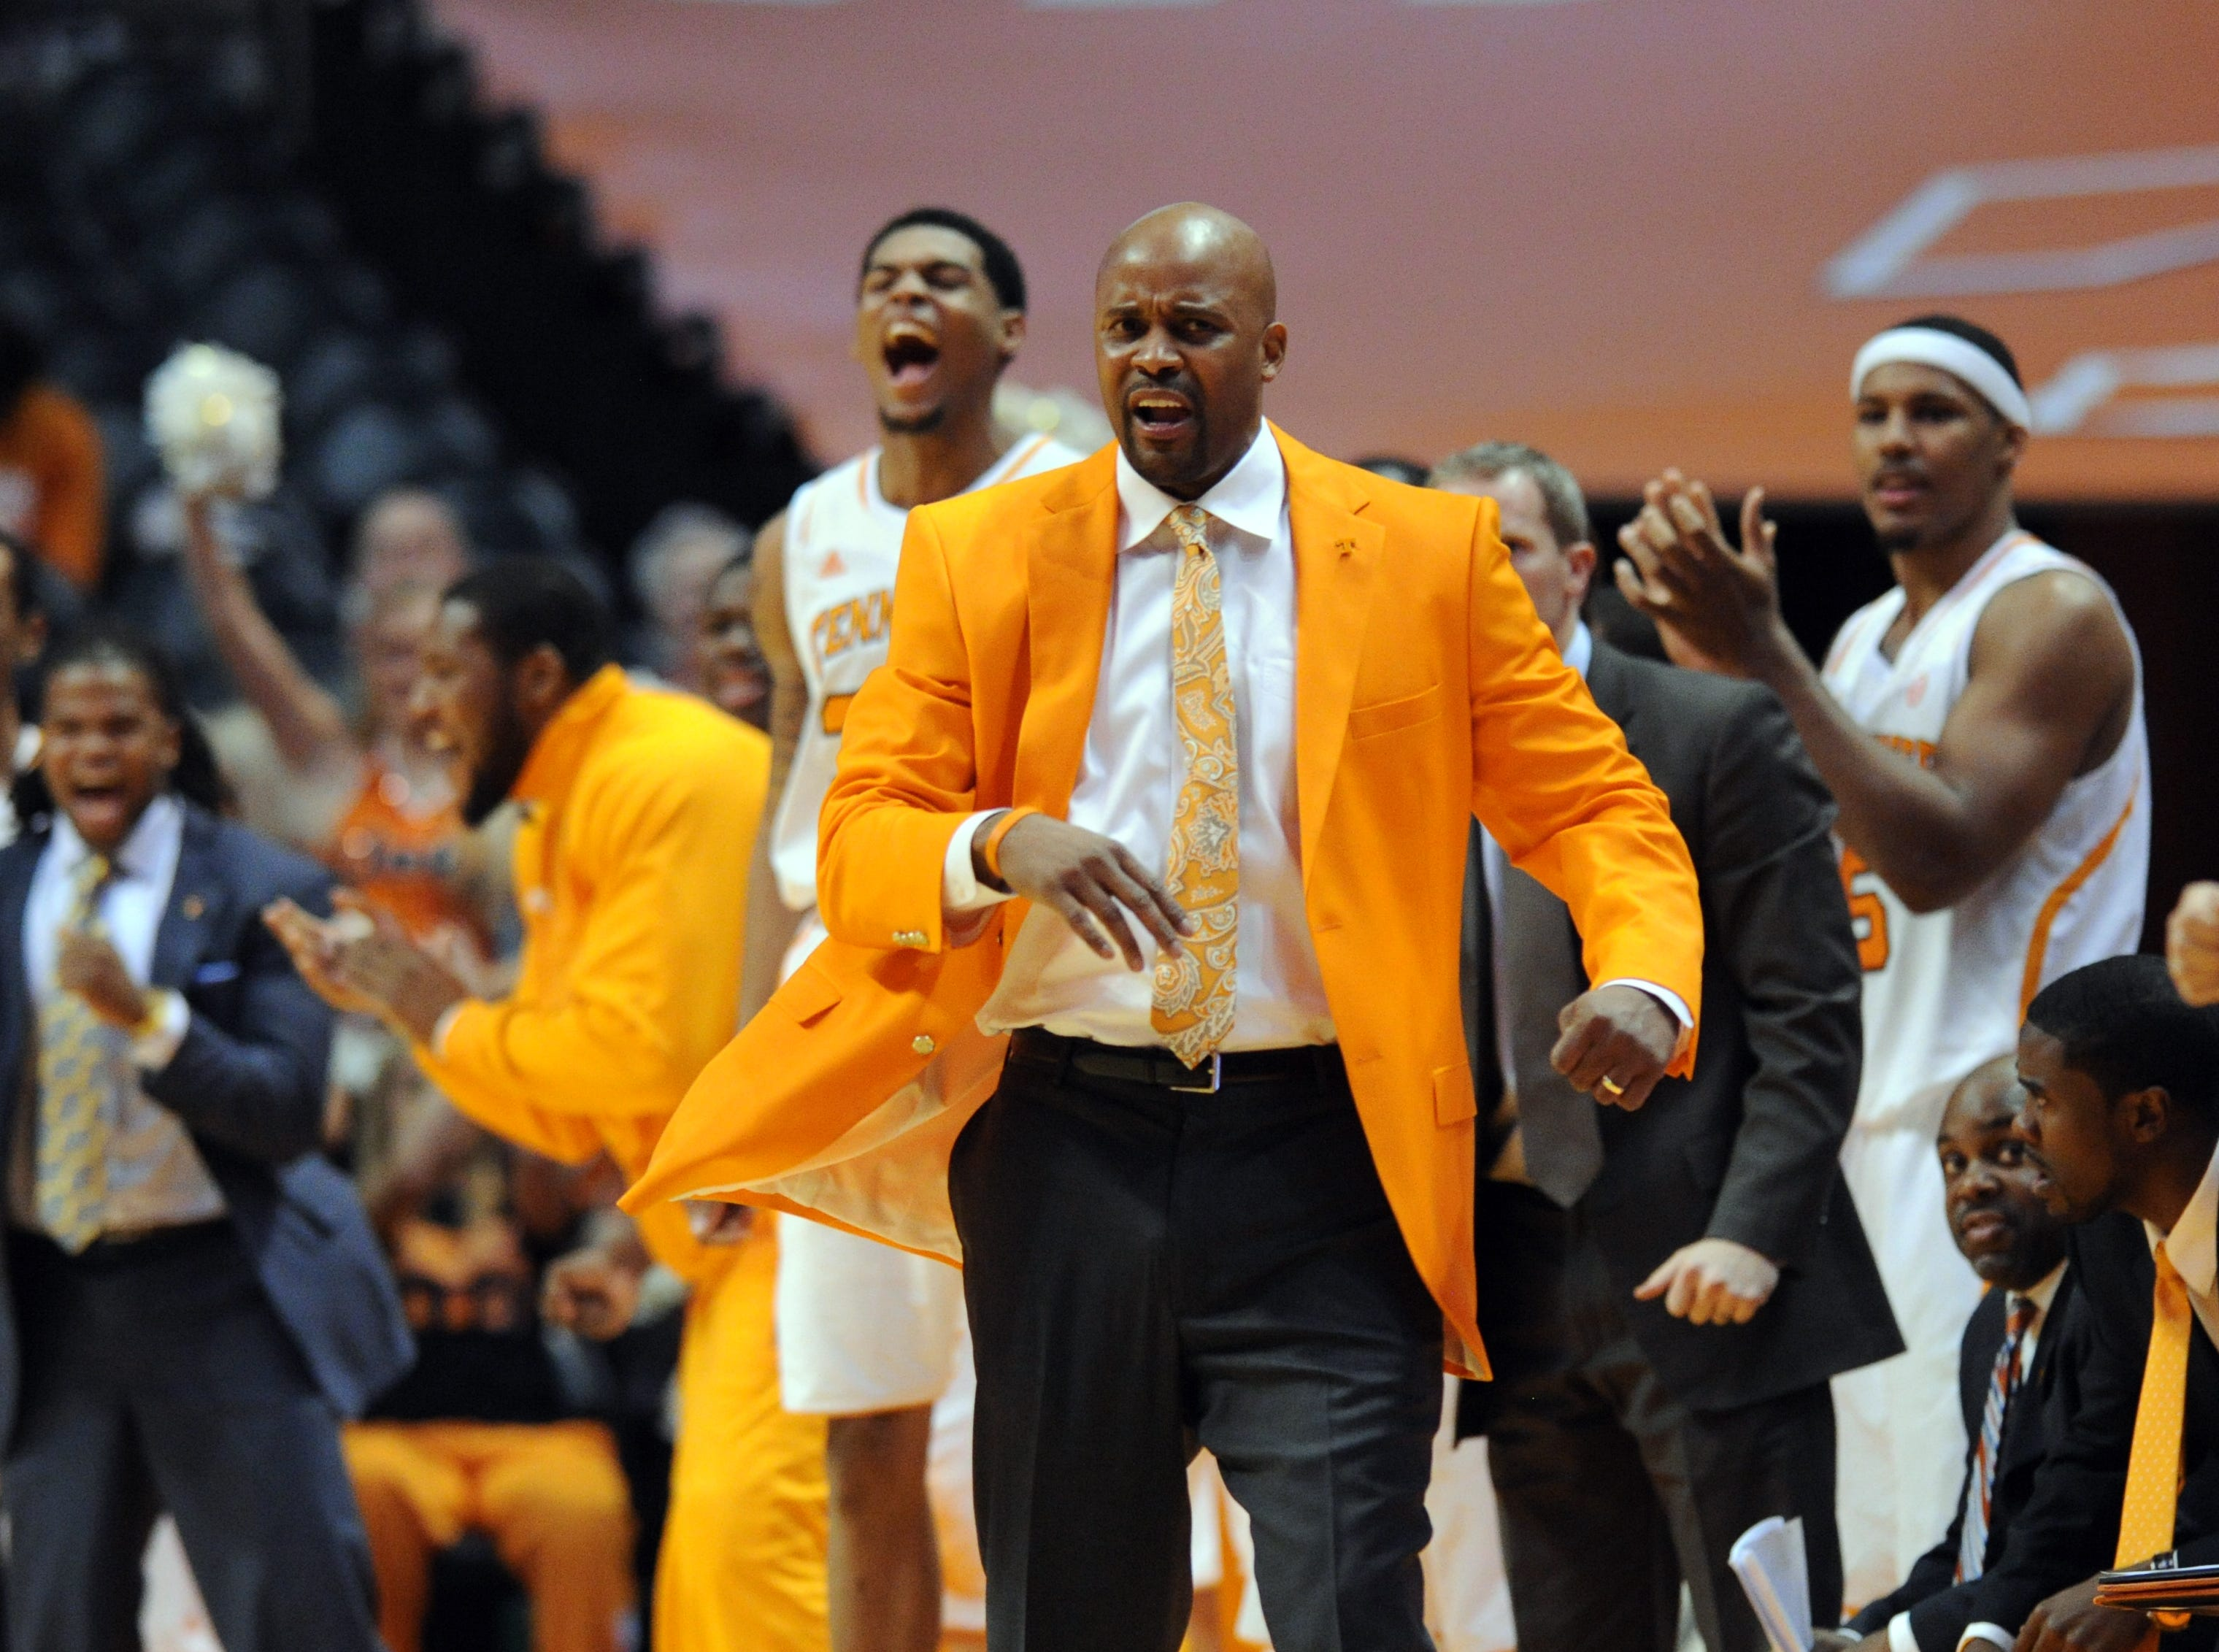 Tennessee head coach Cuonzo Martin celebrates with his players after a Jordan McRae three pointer in the second half against Wichita State at Thompson-Boling Arena Thursday, Dec. 13, 2012.